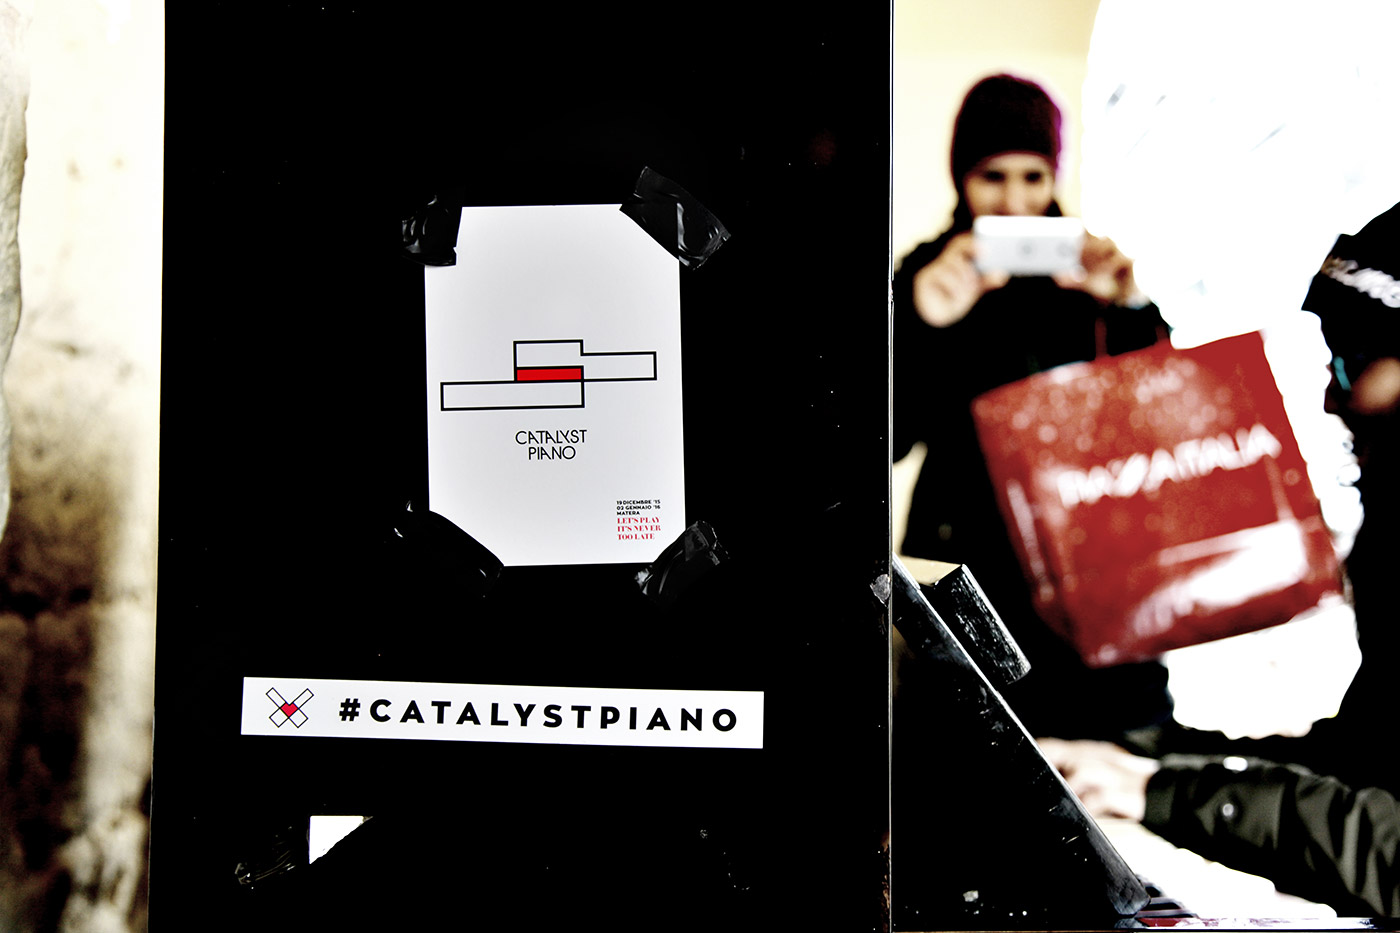 graphic design catalyst piano ego55